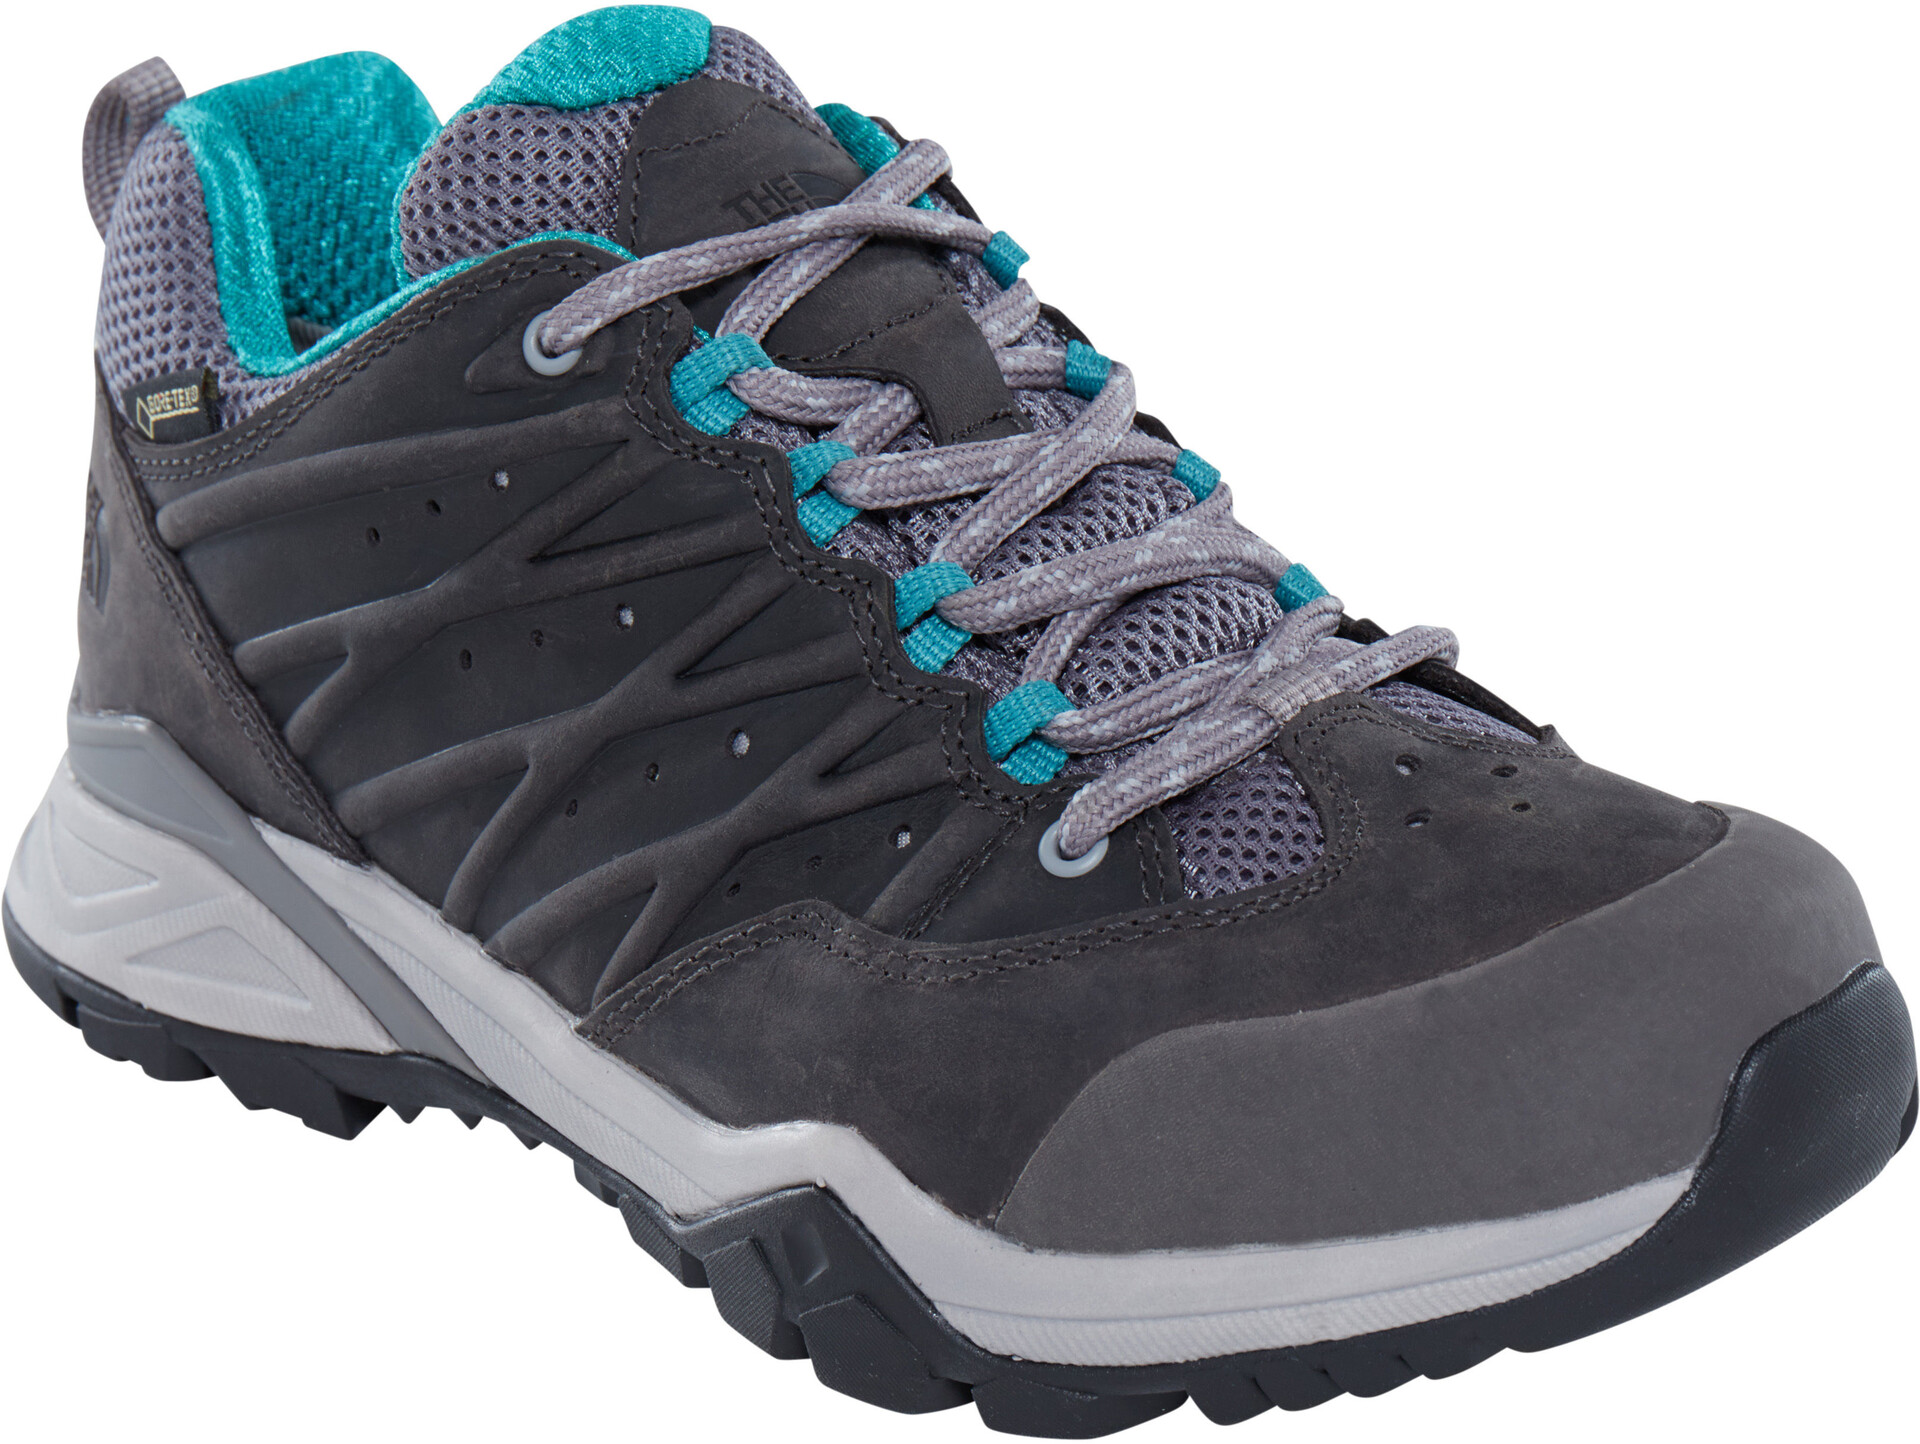 Hedgehog The Femme Hike Face Gris North Chaussures Ii Gtx 1CwPCEnBr